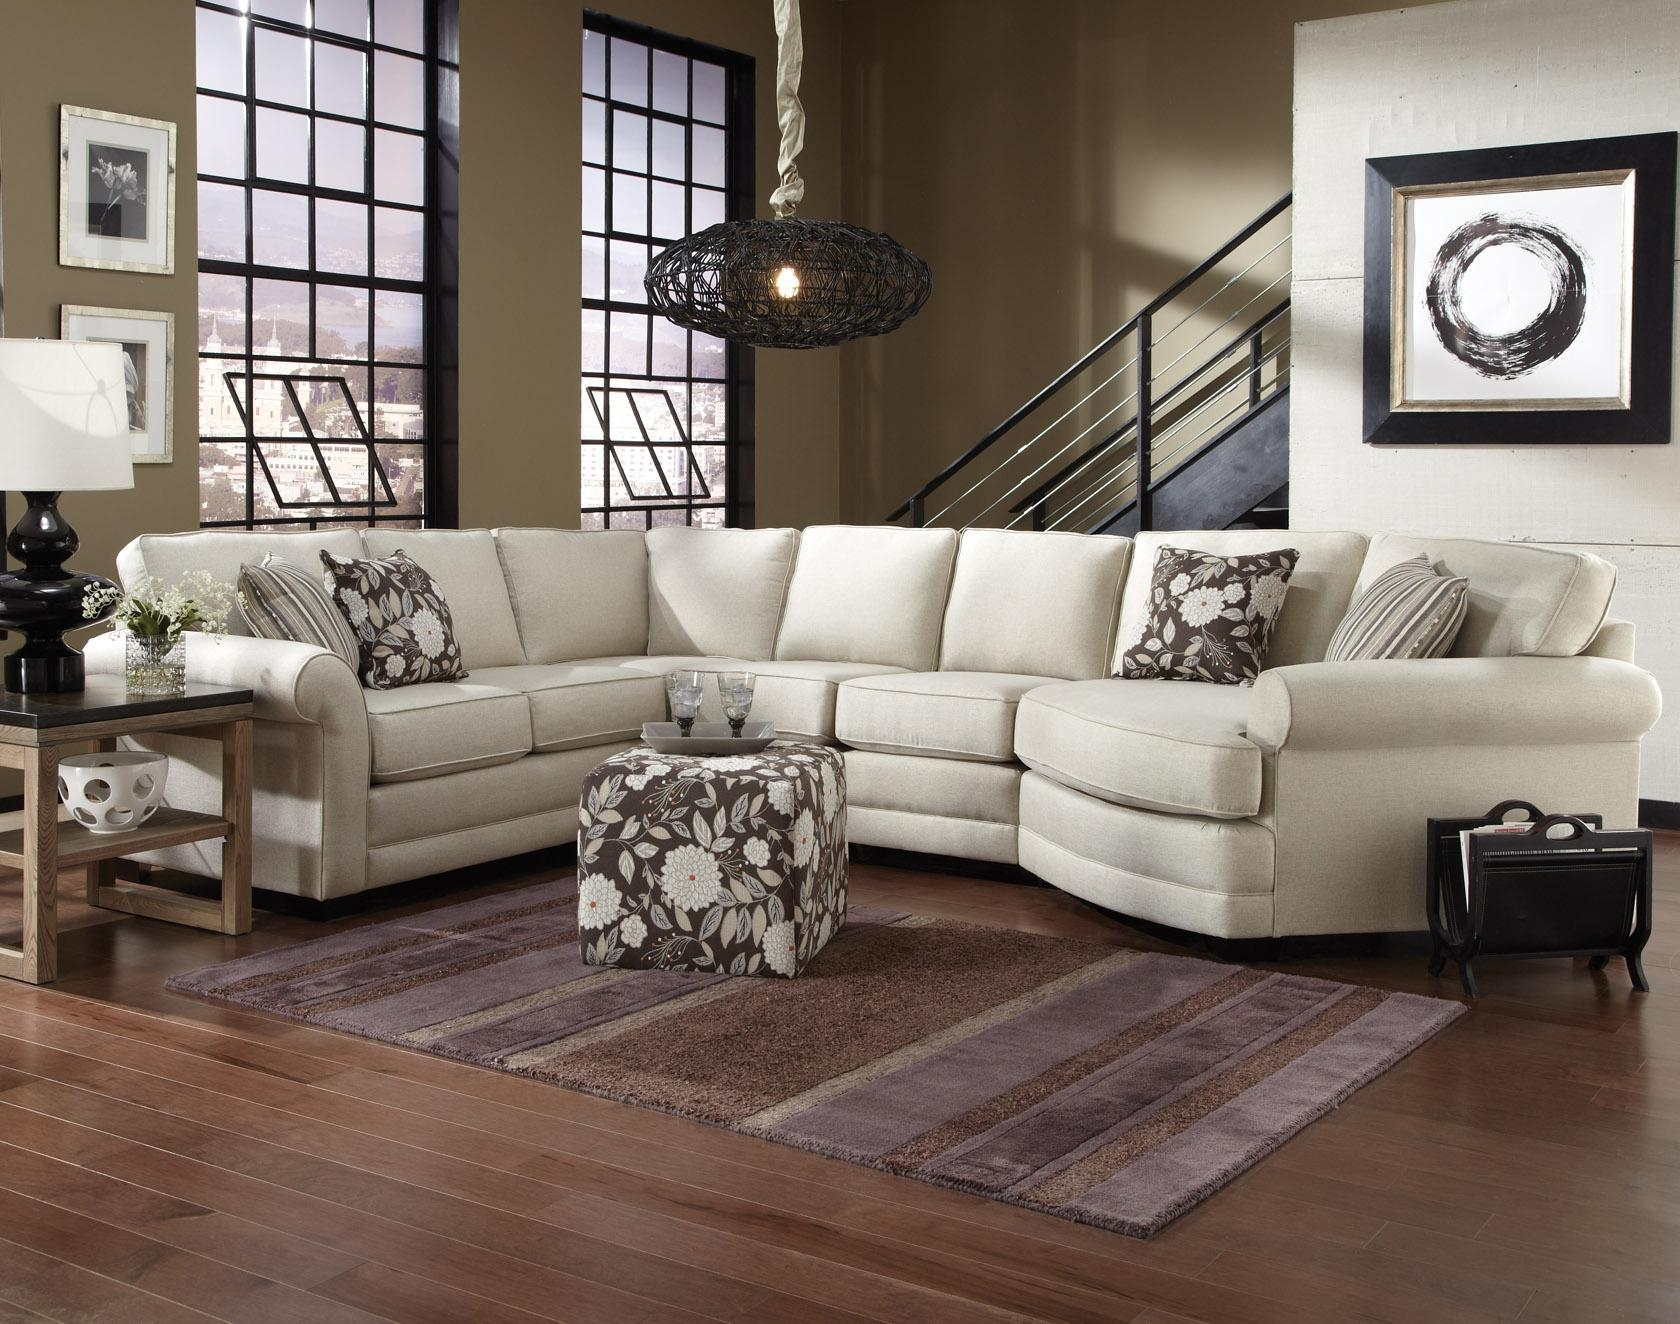 England Brantley 5 Seat Sectional Sofa With Cuddler – Dunk With Regard To Sectional Sofa With Cuddler Chaise (Image 6 of 20)